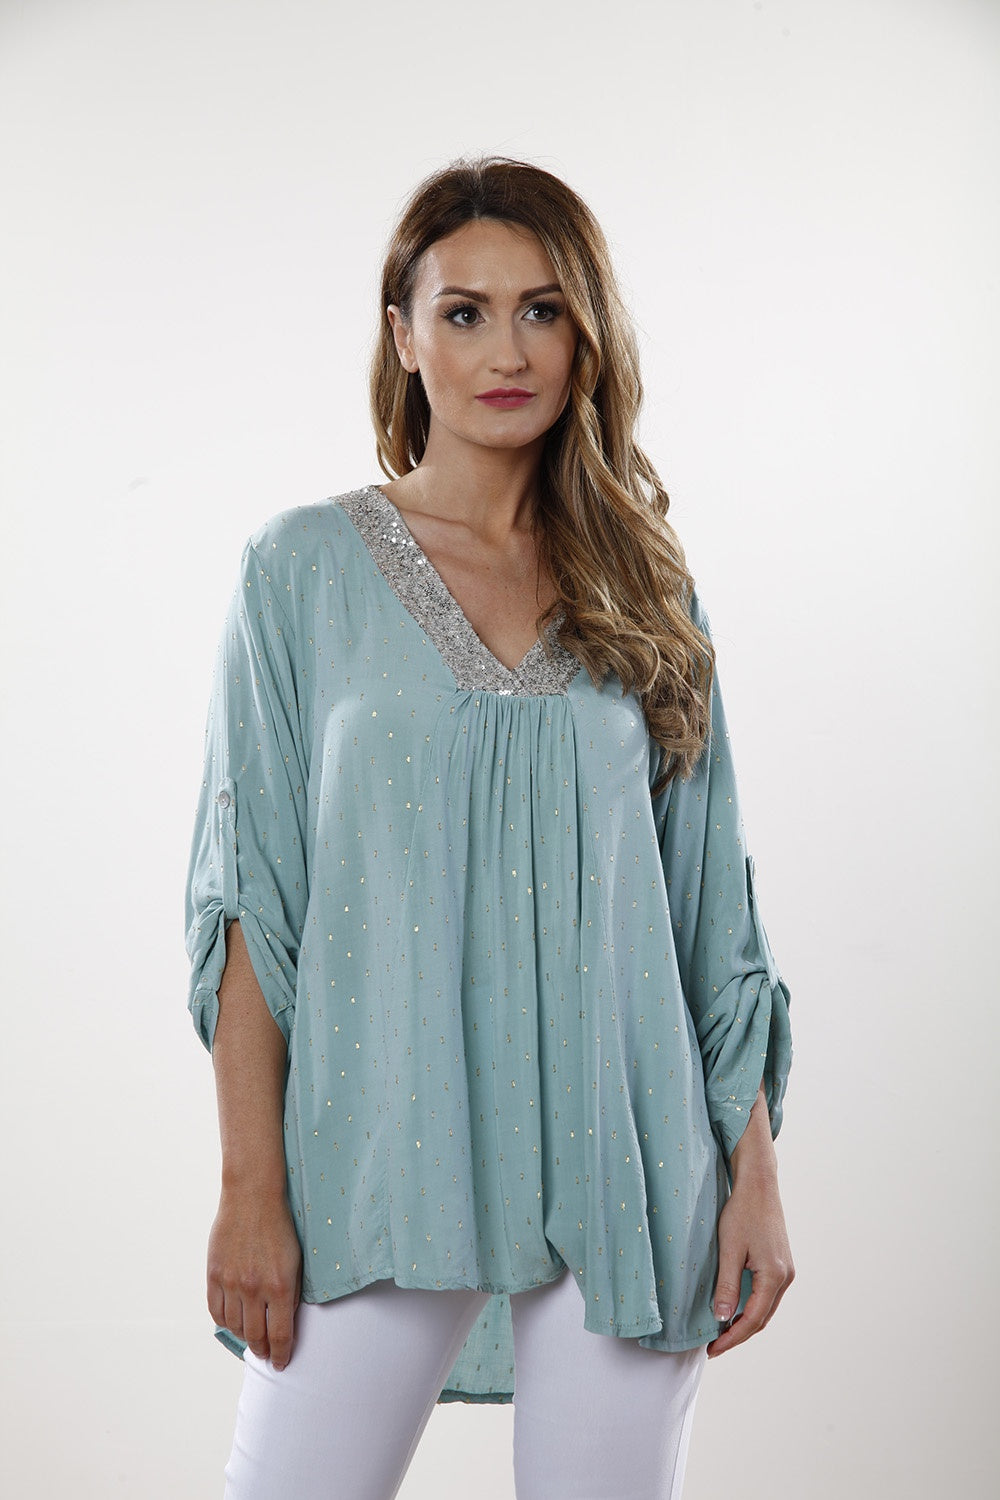 Teal  Sequin Neck Blouse - Goose Island